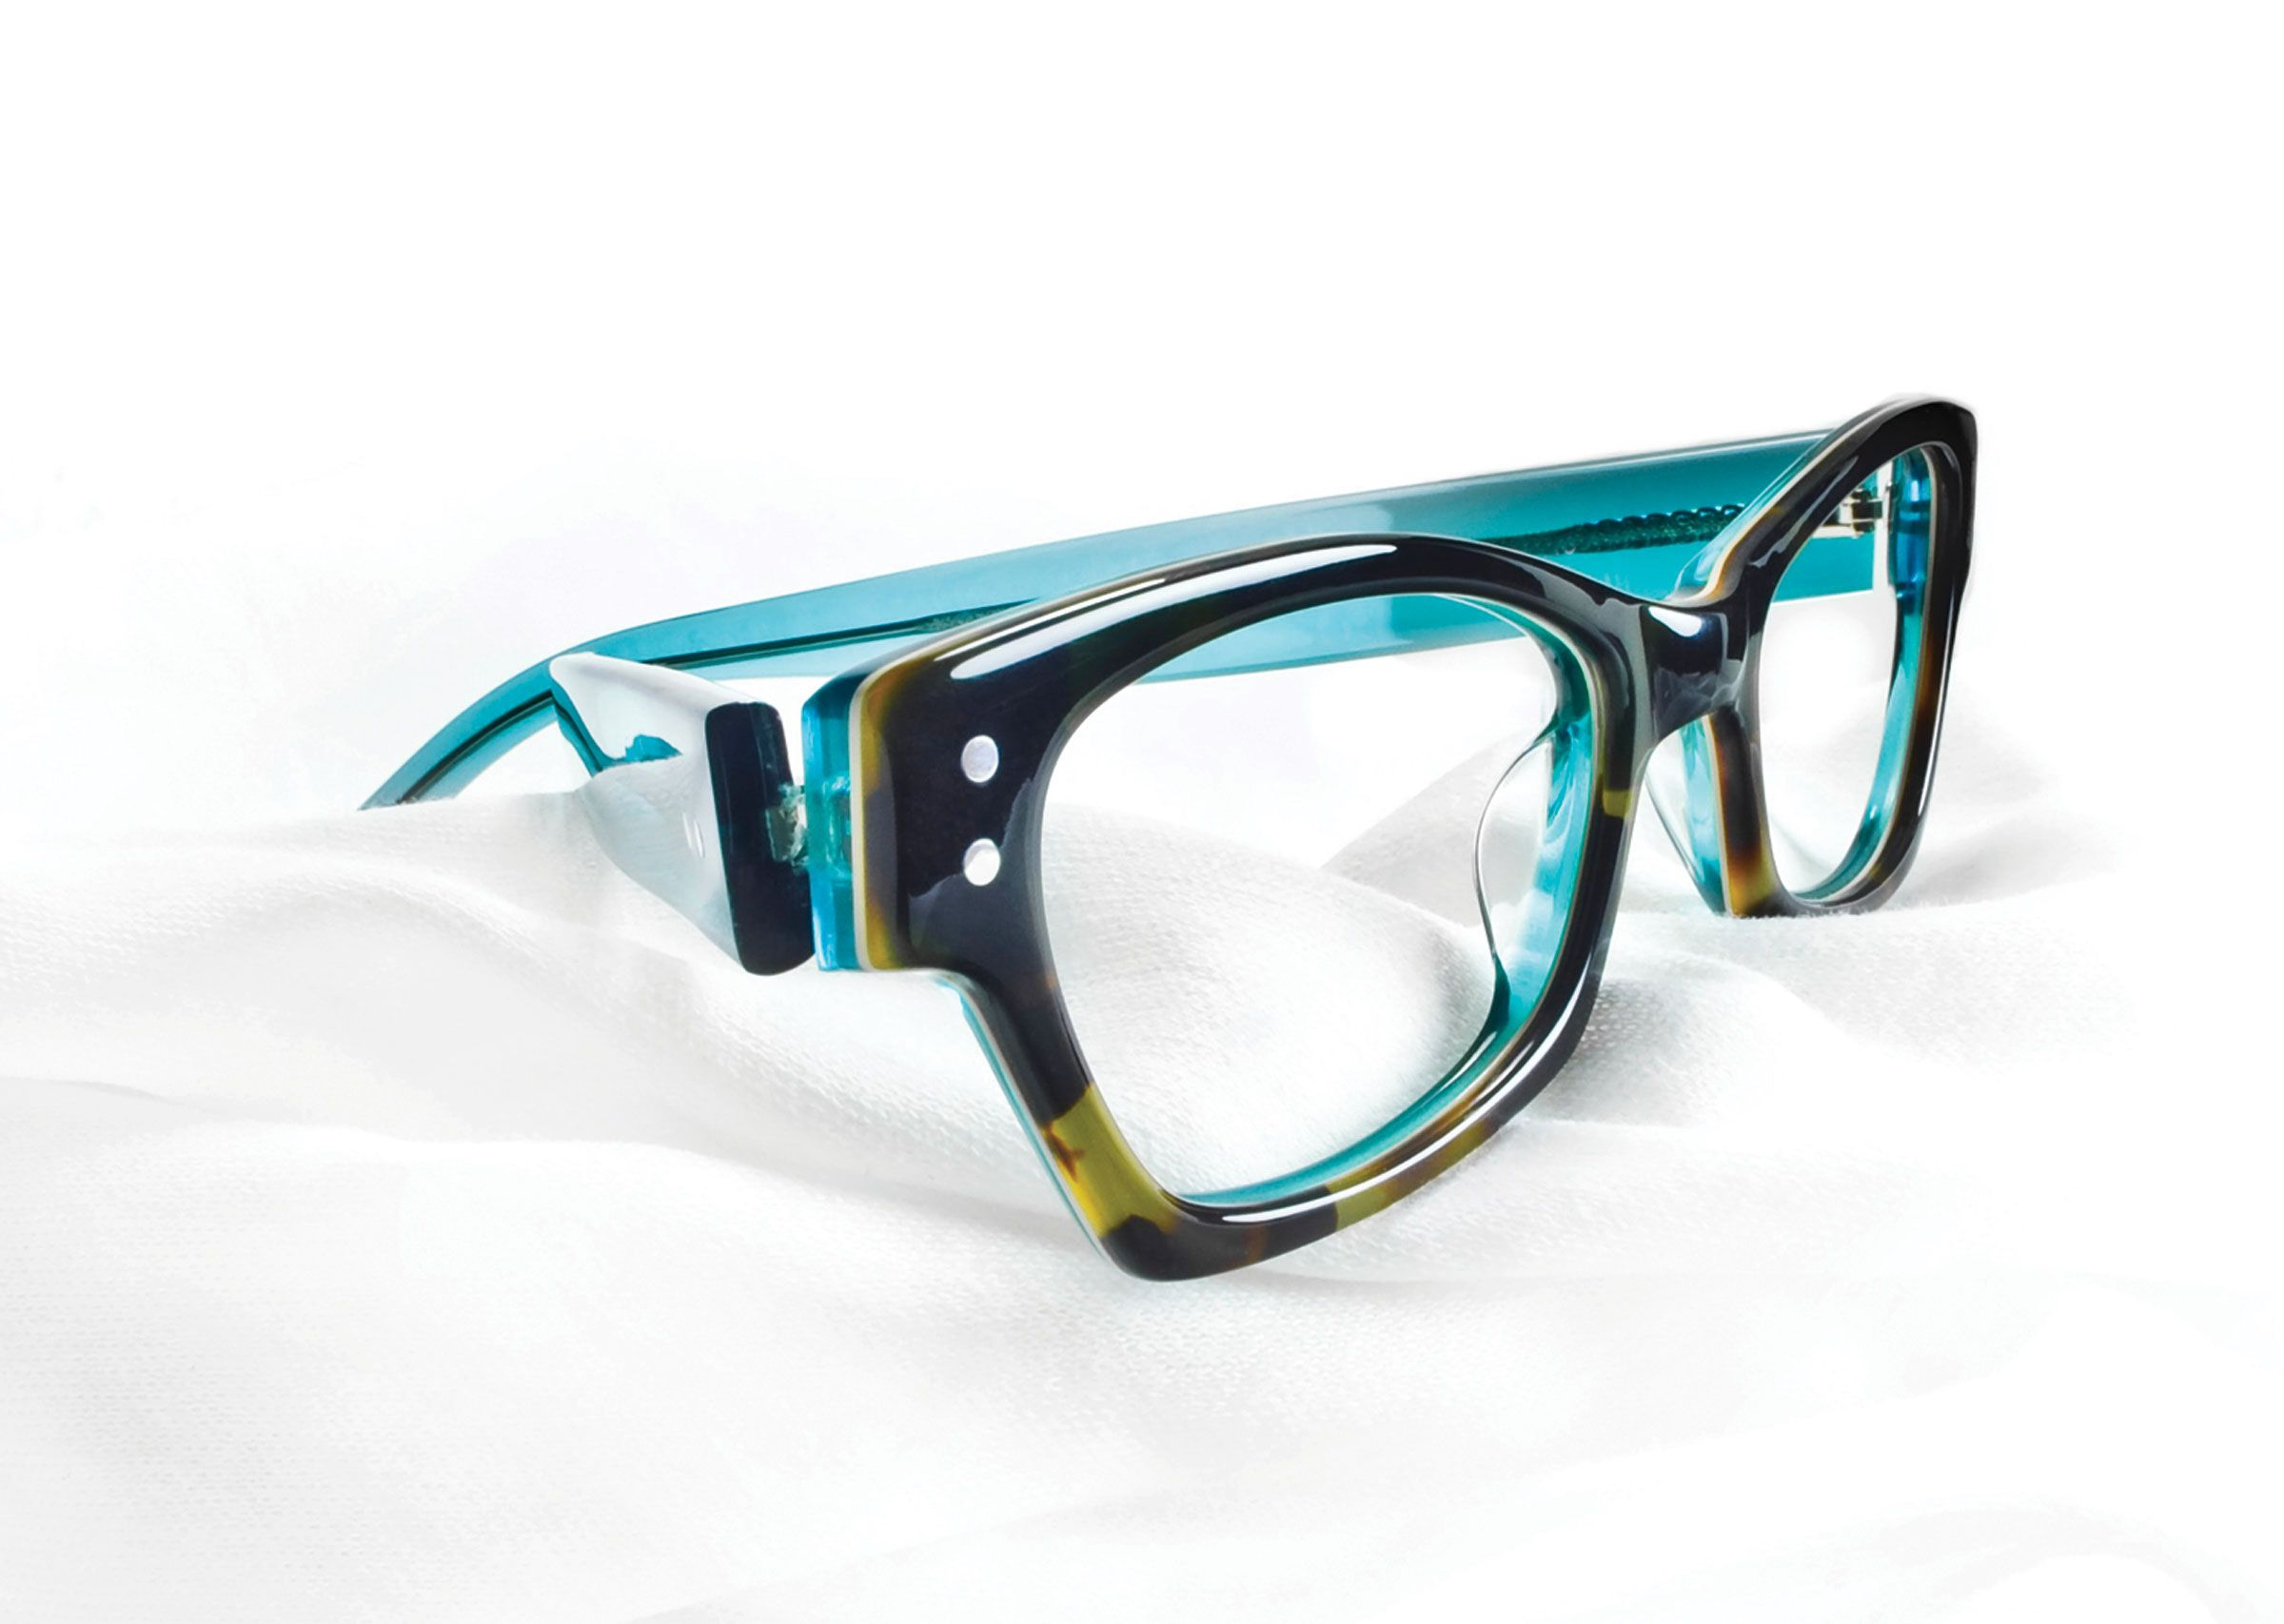 9c49a137644 Sure to be a hit at the Spring Frame show this year!  www.hiemstraoptical.com frameshow.html Ogi Eyewear s 9067 Frame